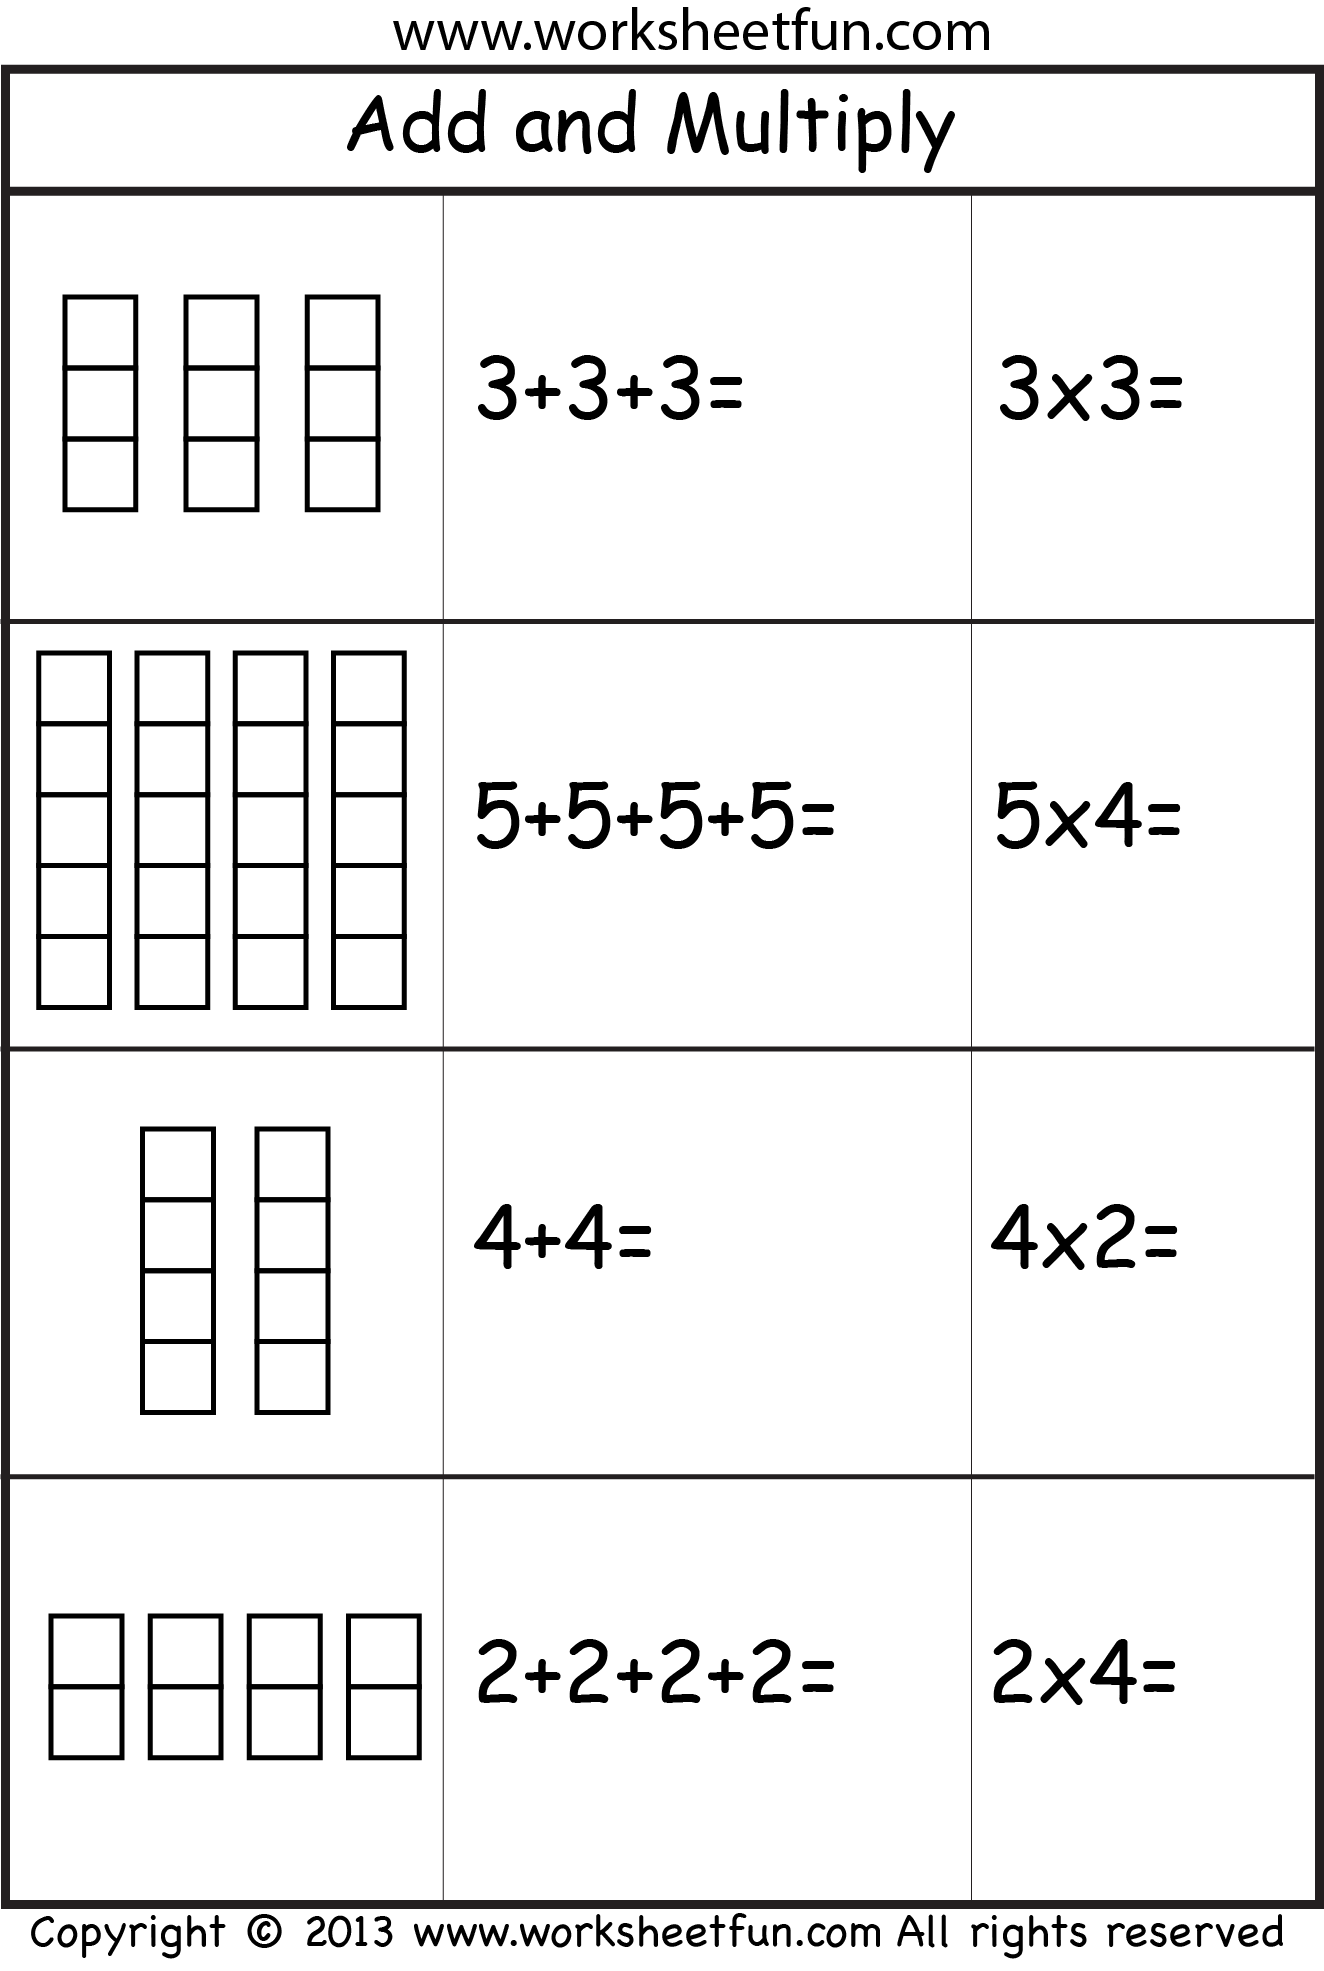 multiplication add and multiply repeated addition two worksheets free printable. Black Bedroom Furniture Sets. Home Design Ideas